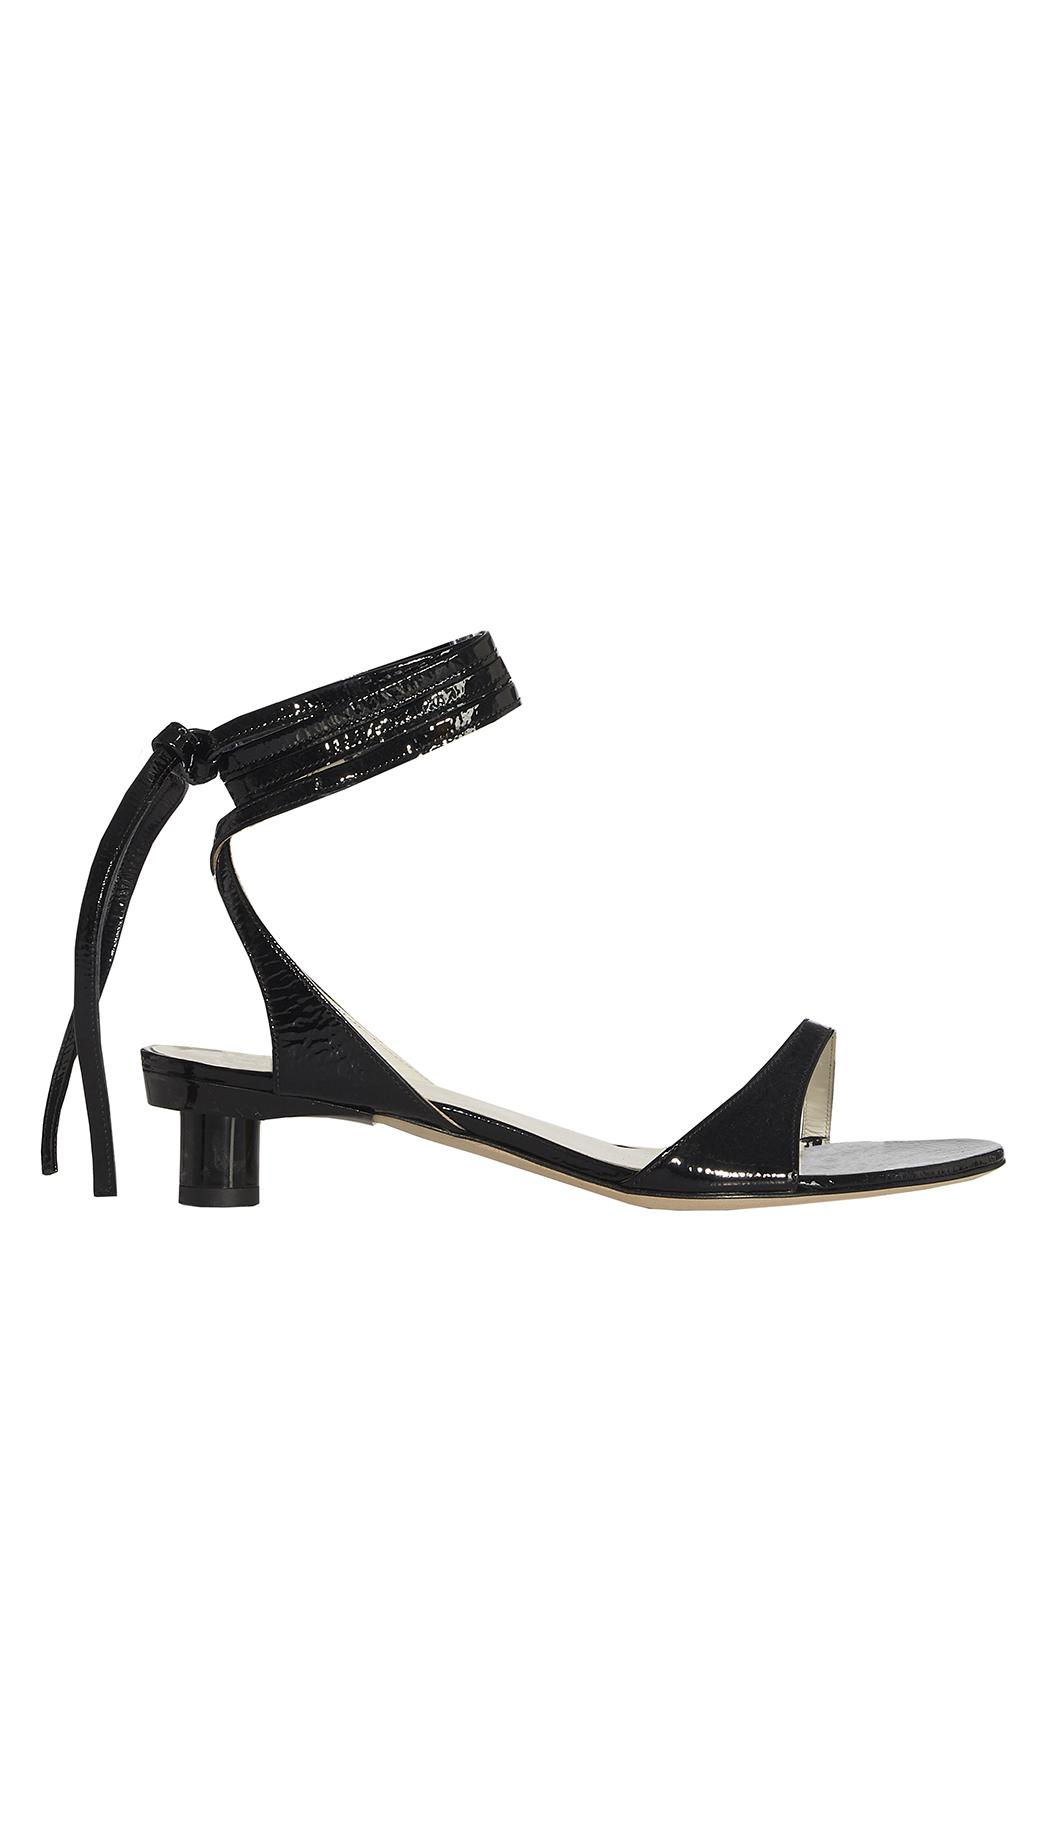 53b2c6c53 Lyst - Tibi Sandals in Black